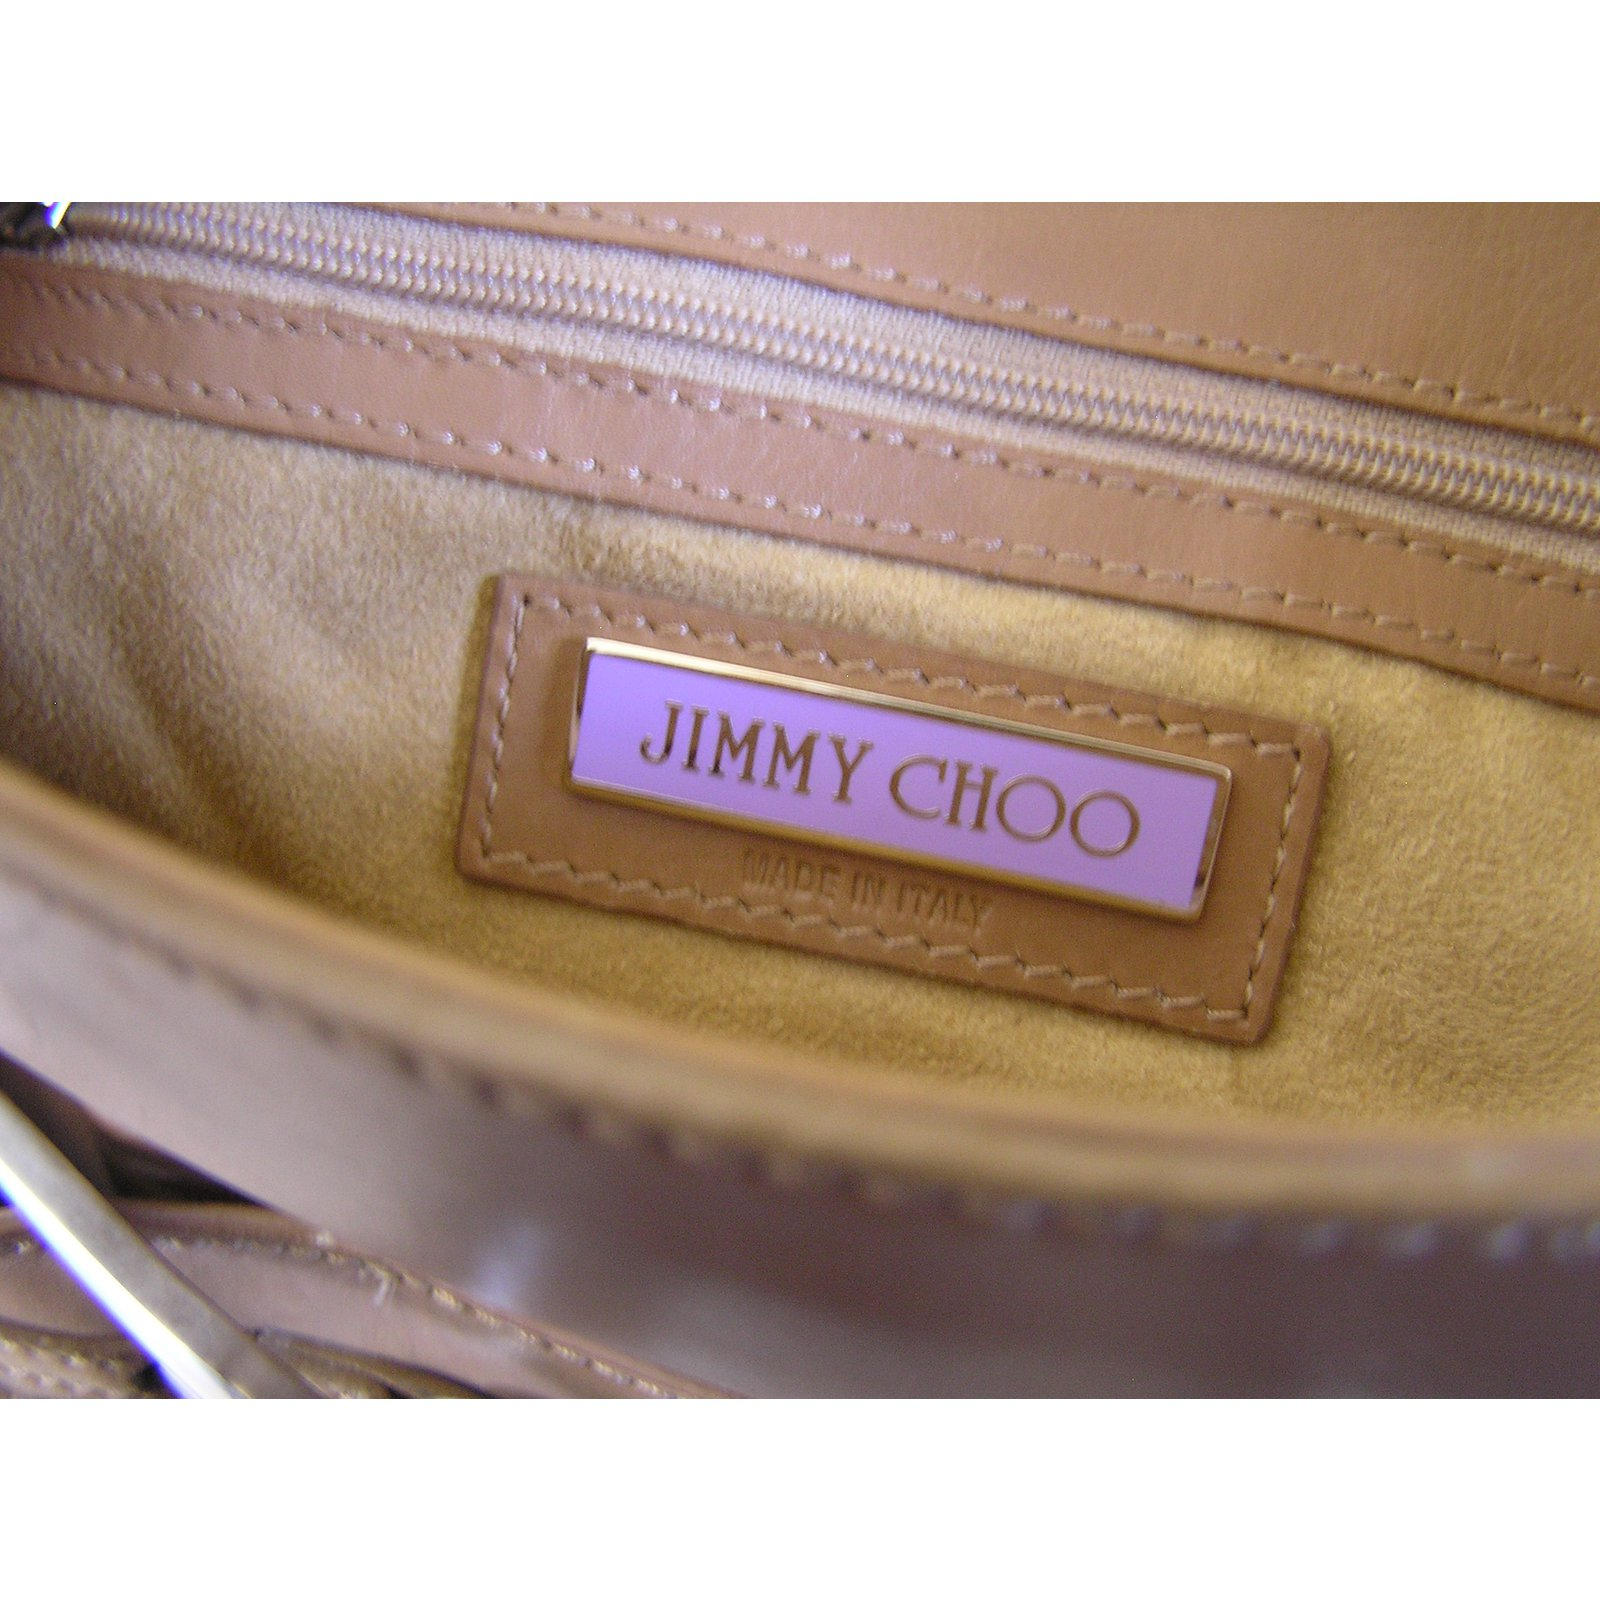 8690d8a3fa Jimmy Choo Handbags Handbags Leather Caramel ref.58062 - Joli Closet